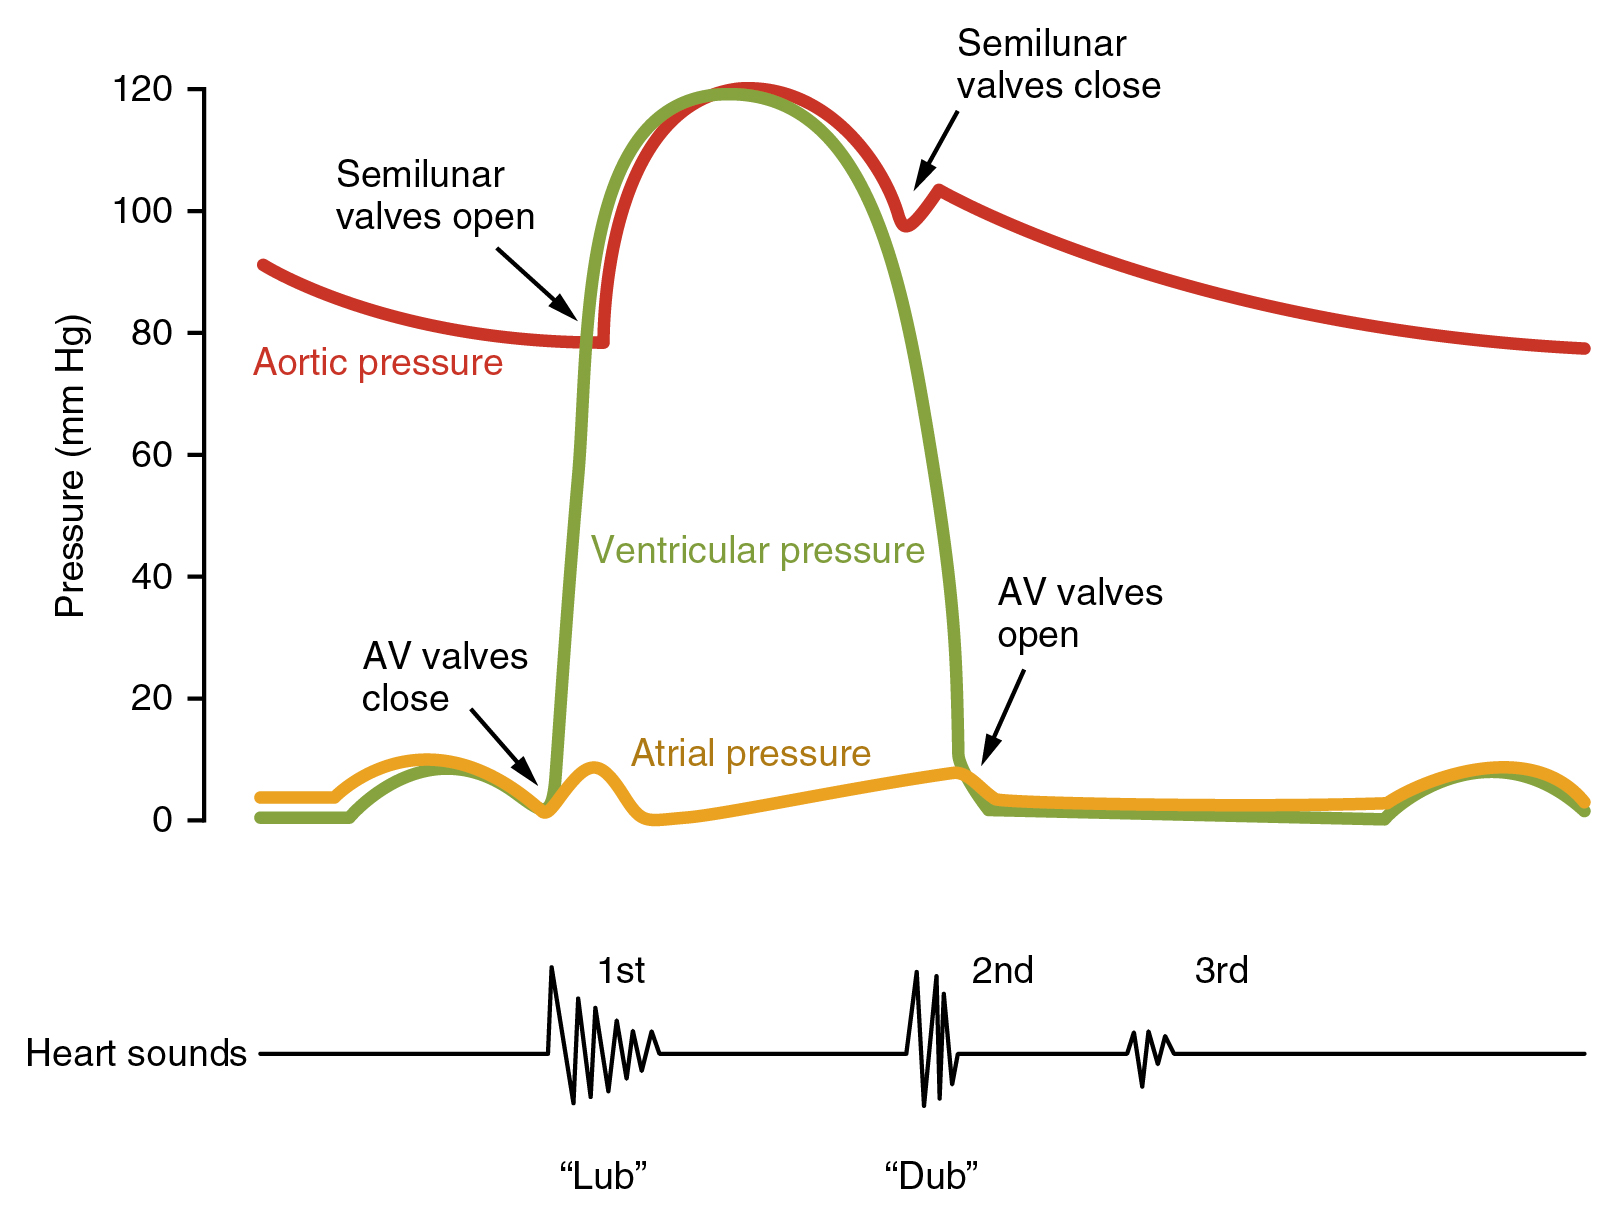 (http://archive.cnx.org/resources/7804d1b41124c96078af2e71ca12940b8488747e/2029_Cardiac_Cycle_vs_Heart_Sounds.jpg)